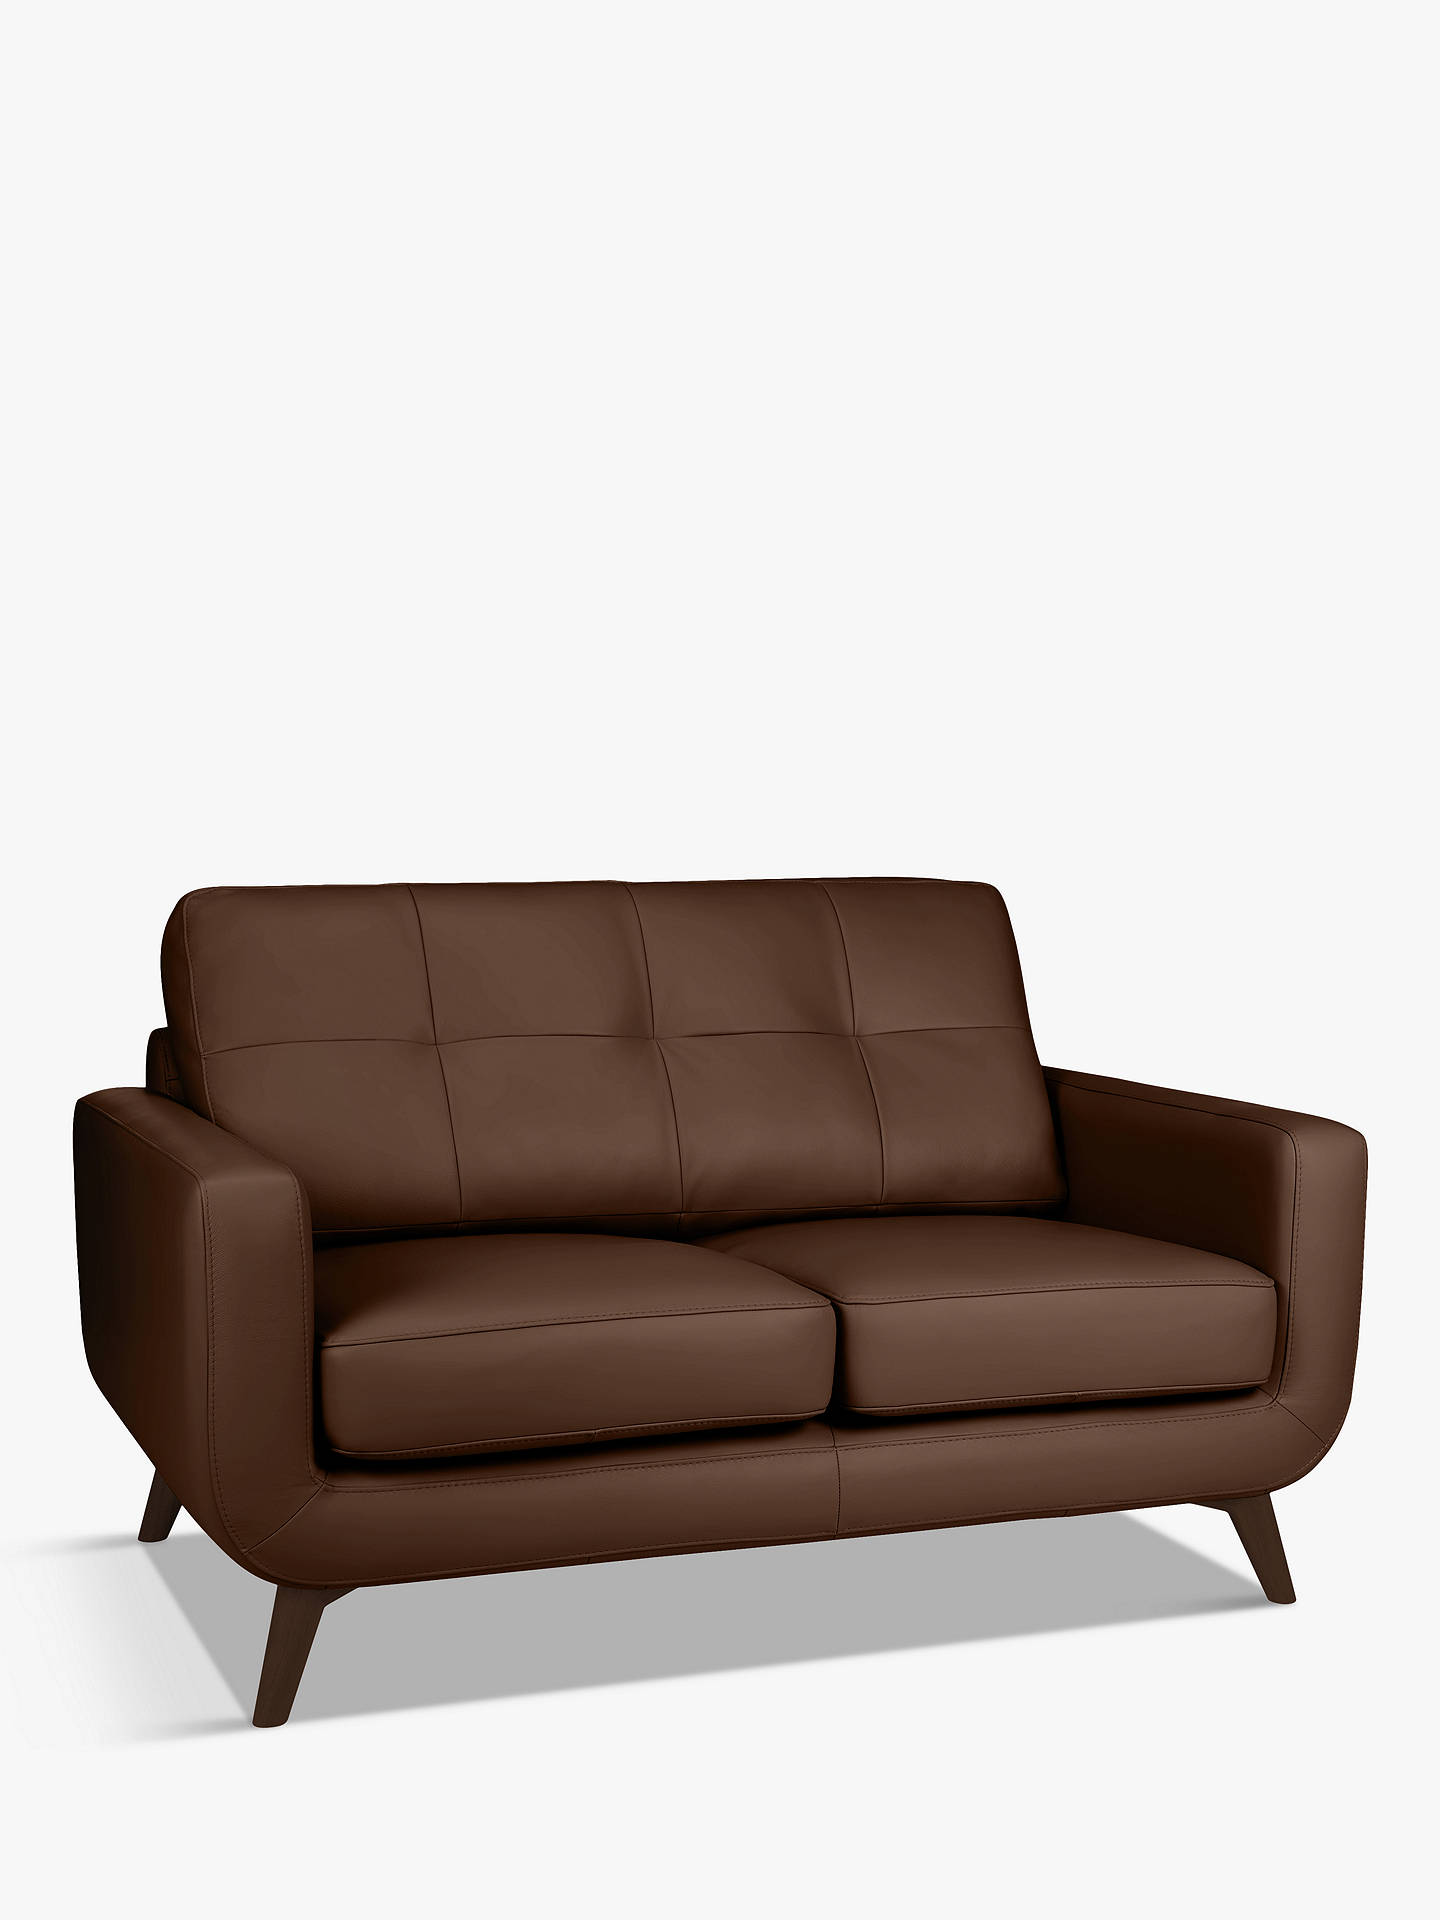 Buy John Lewis & Partners Barbican Small 2 Seater Leather Sofa, Dark Leg, Contempo Castanga Online at johnlewis.com